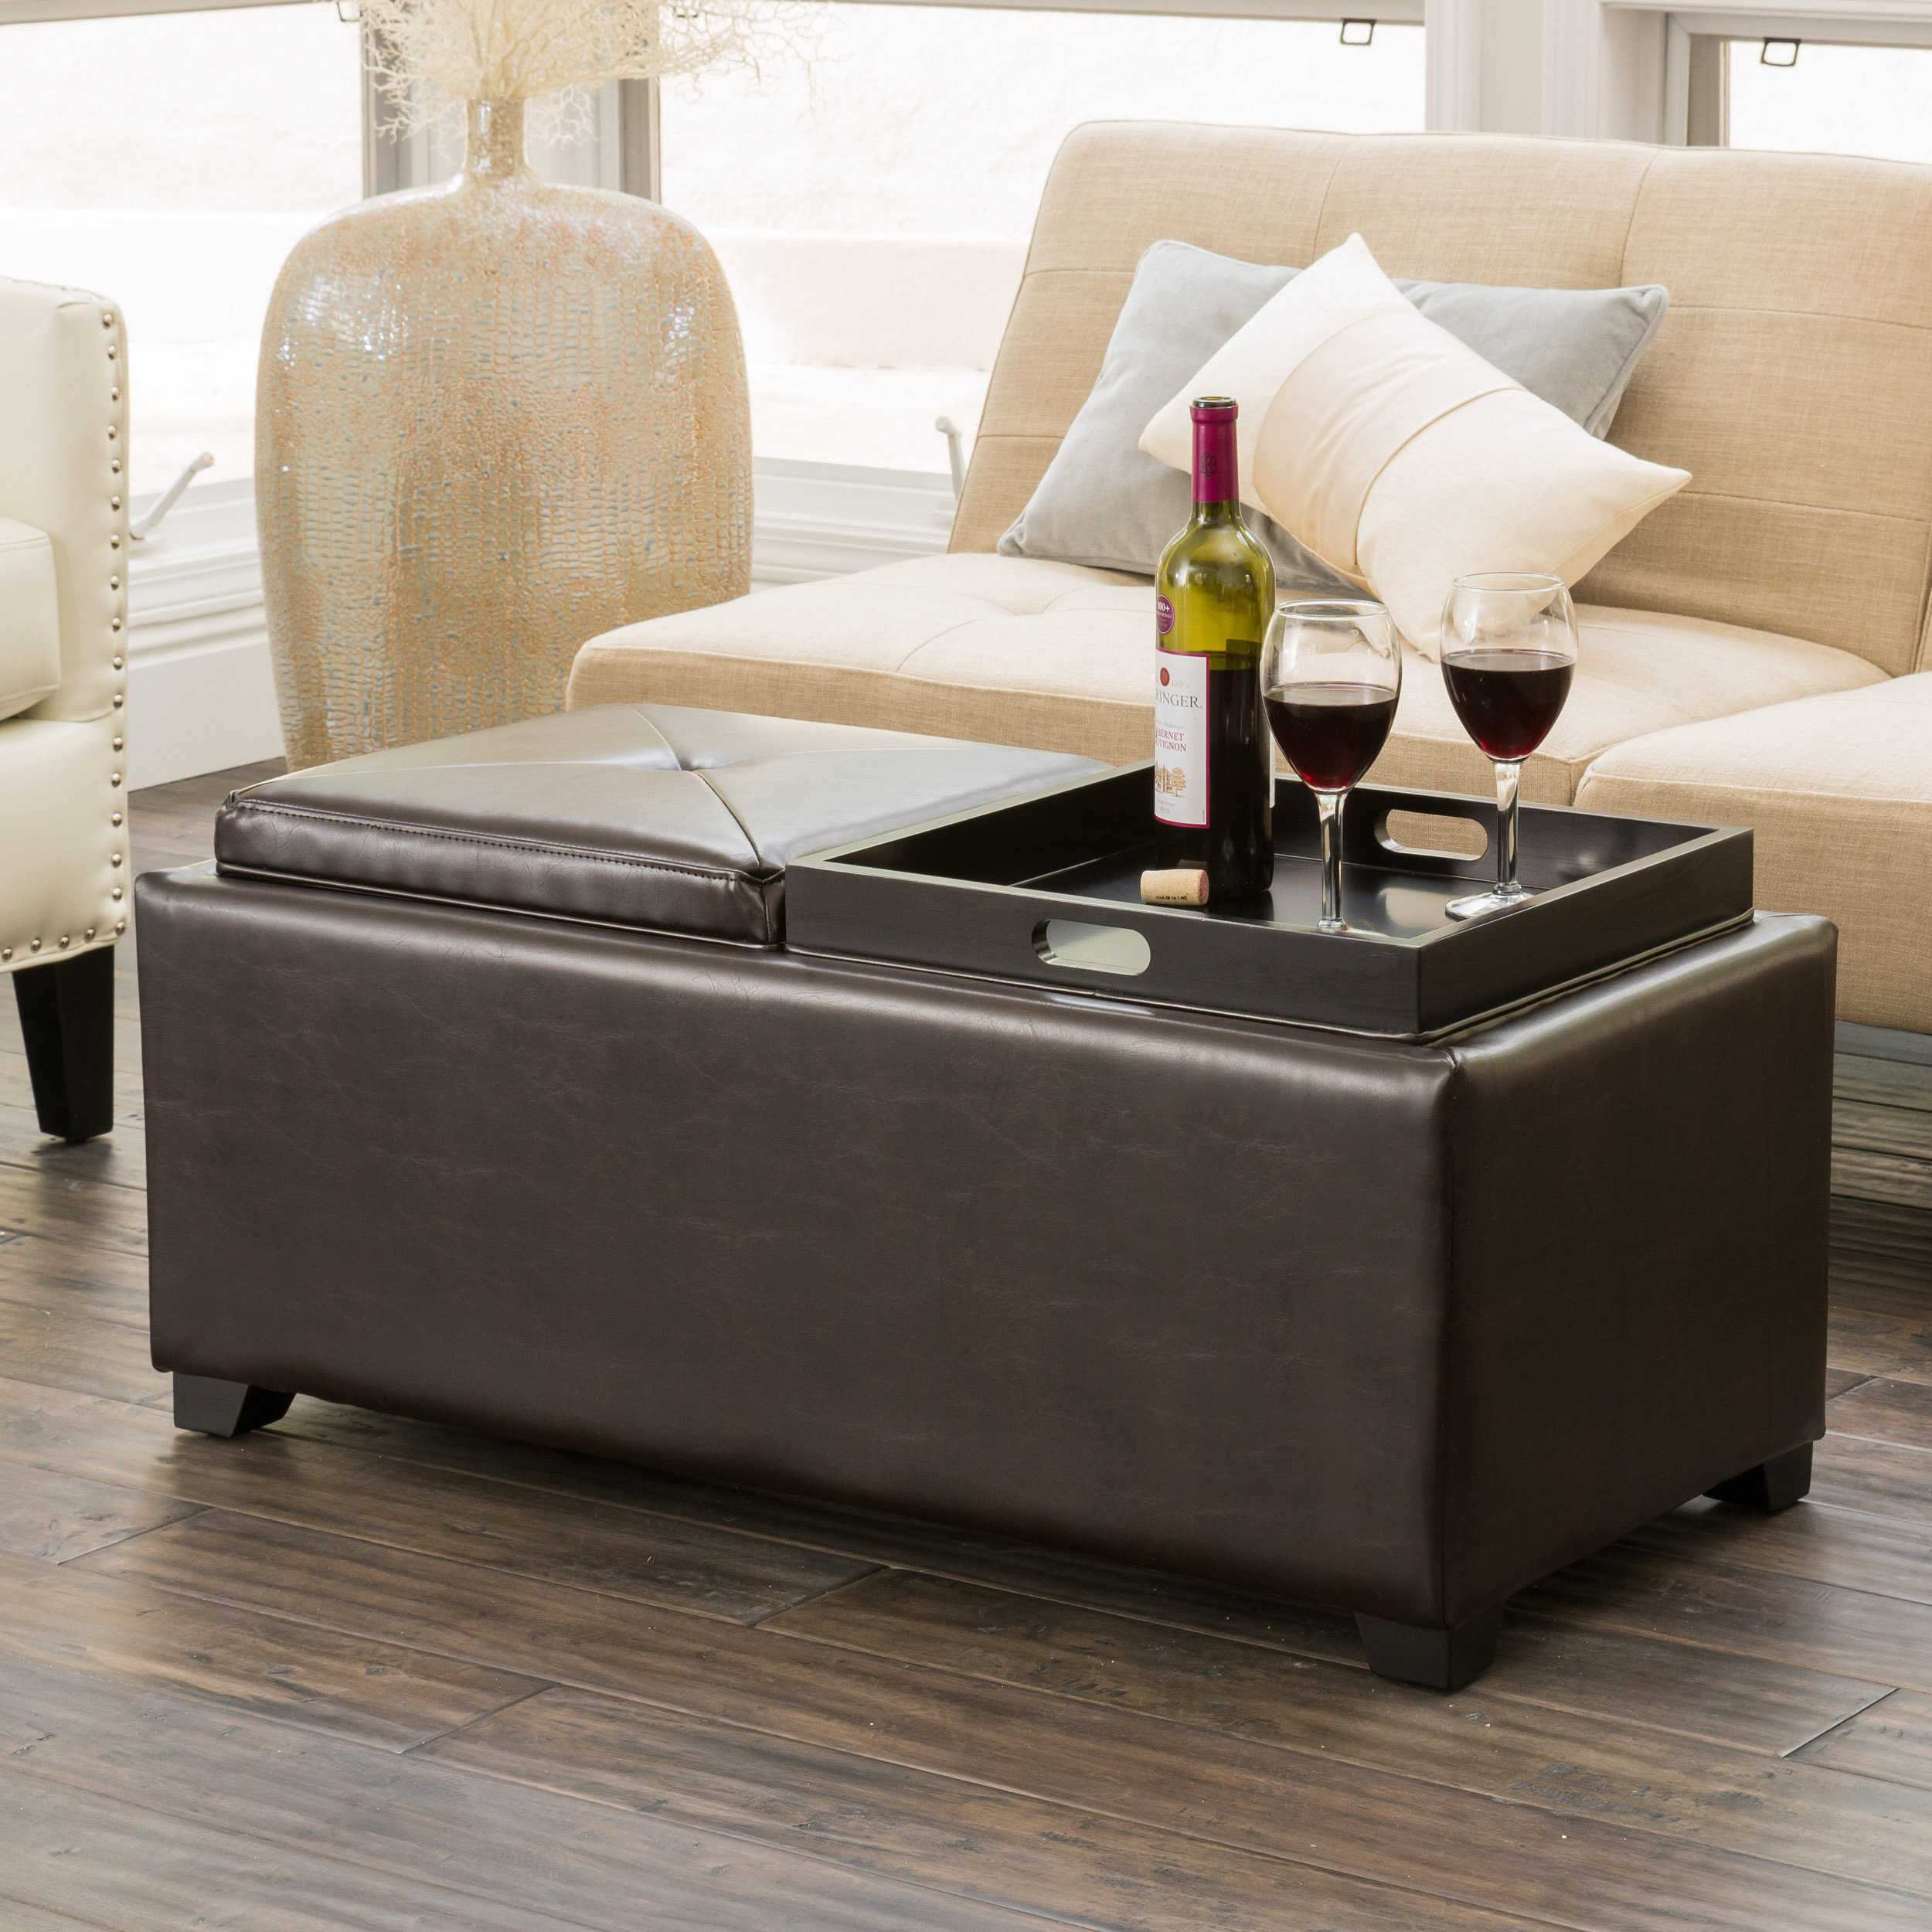 Maxwell Brown Bonded Leather Double Tray Ottoman